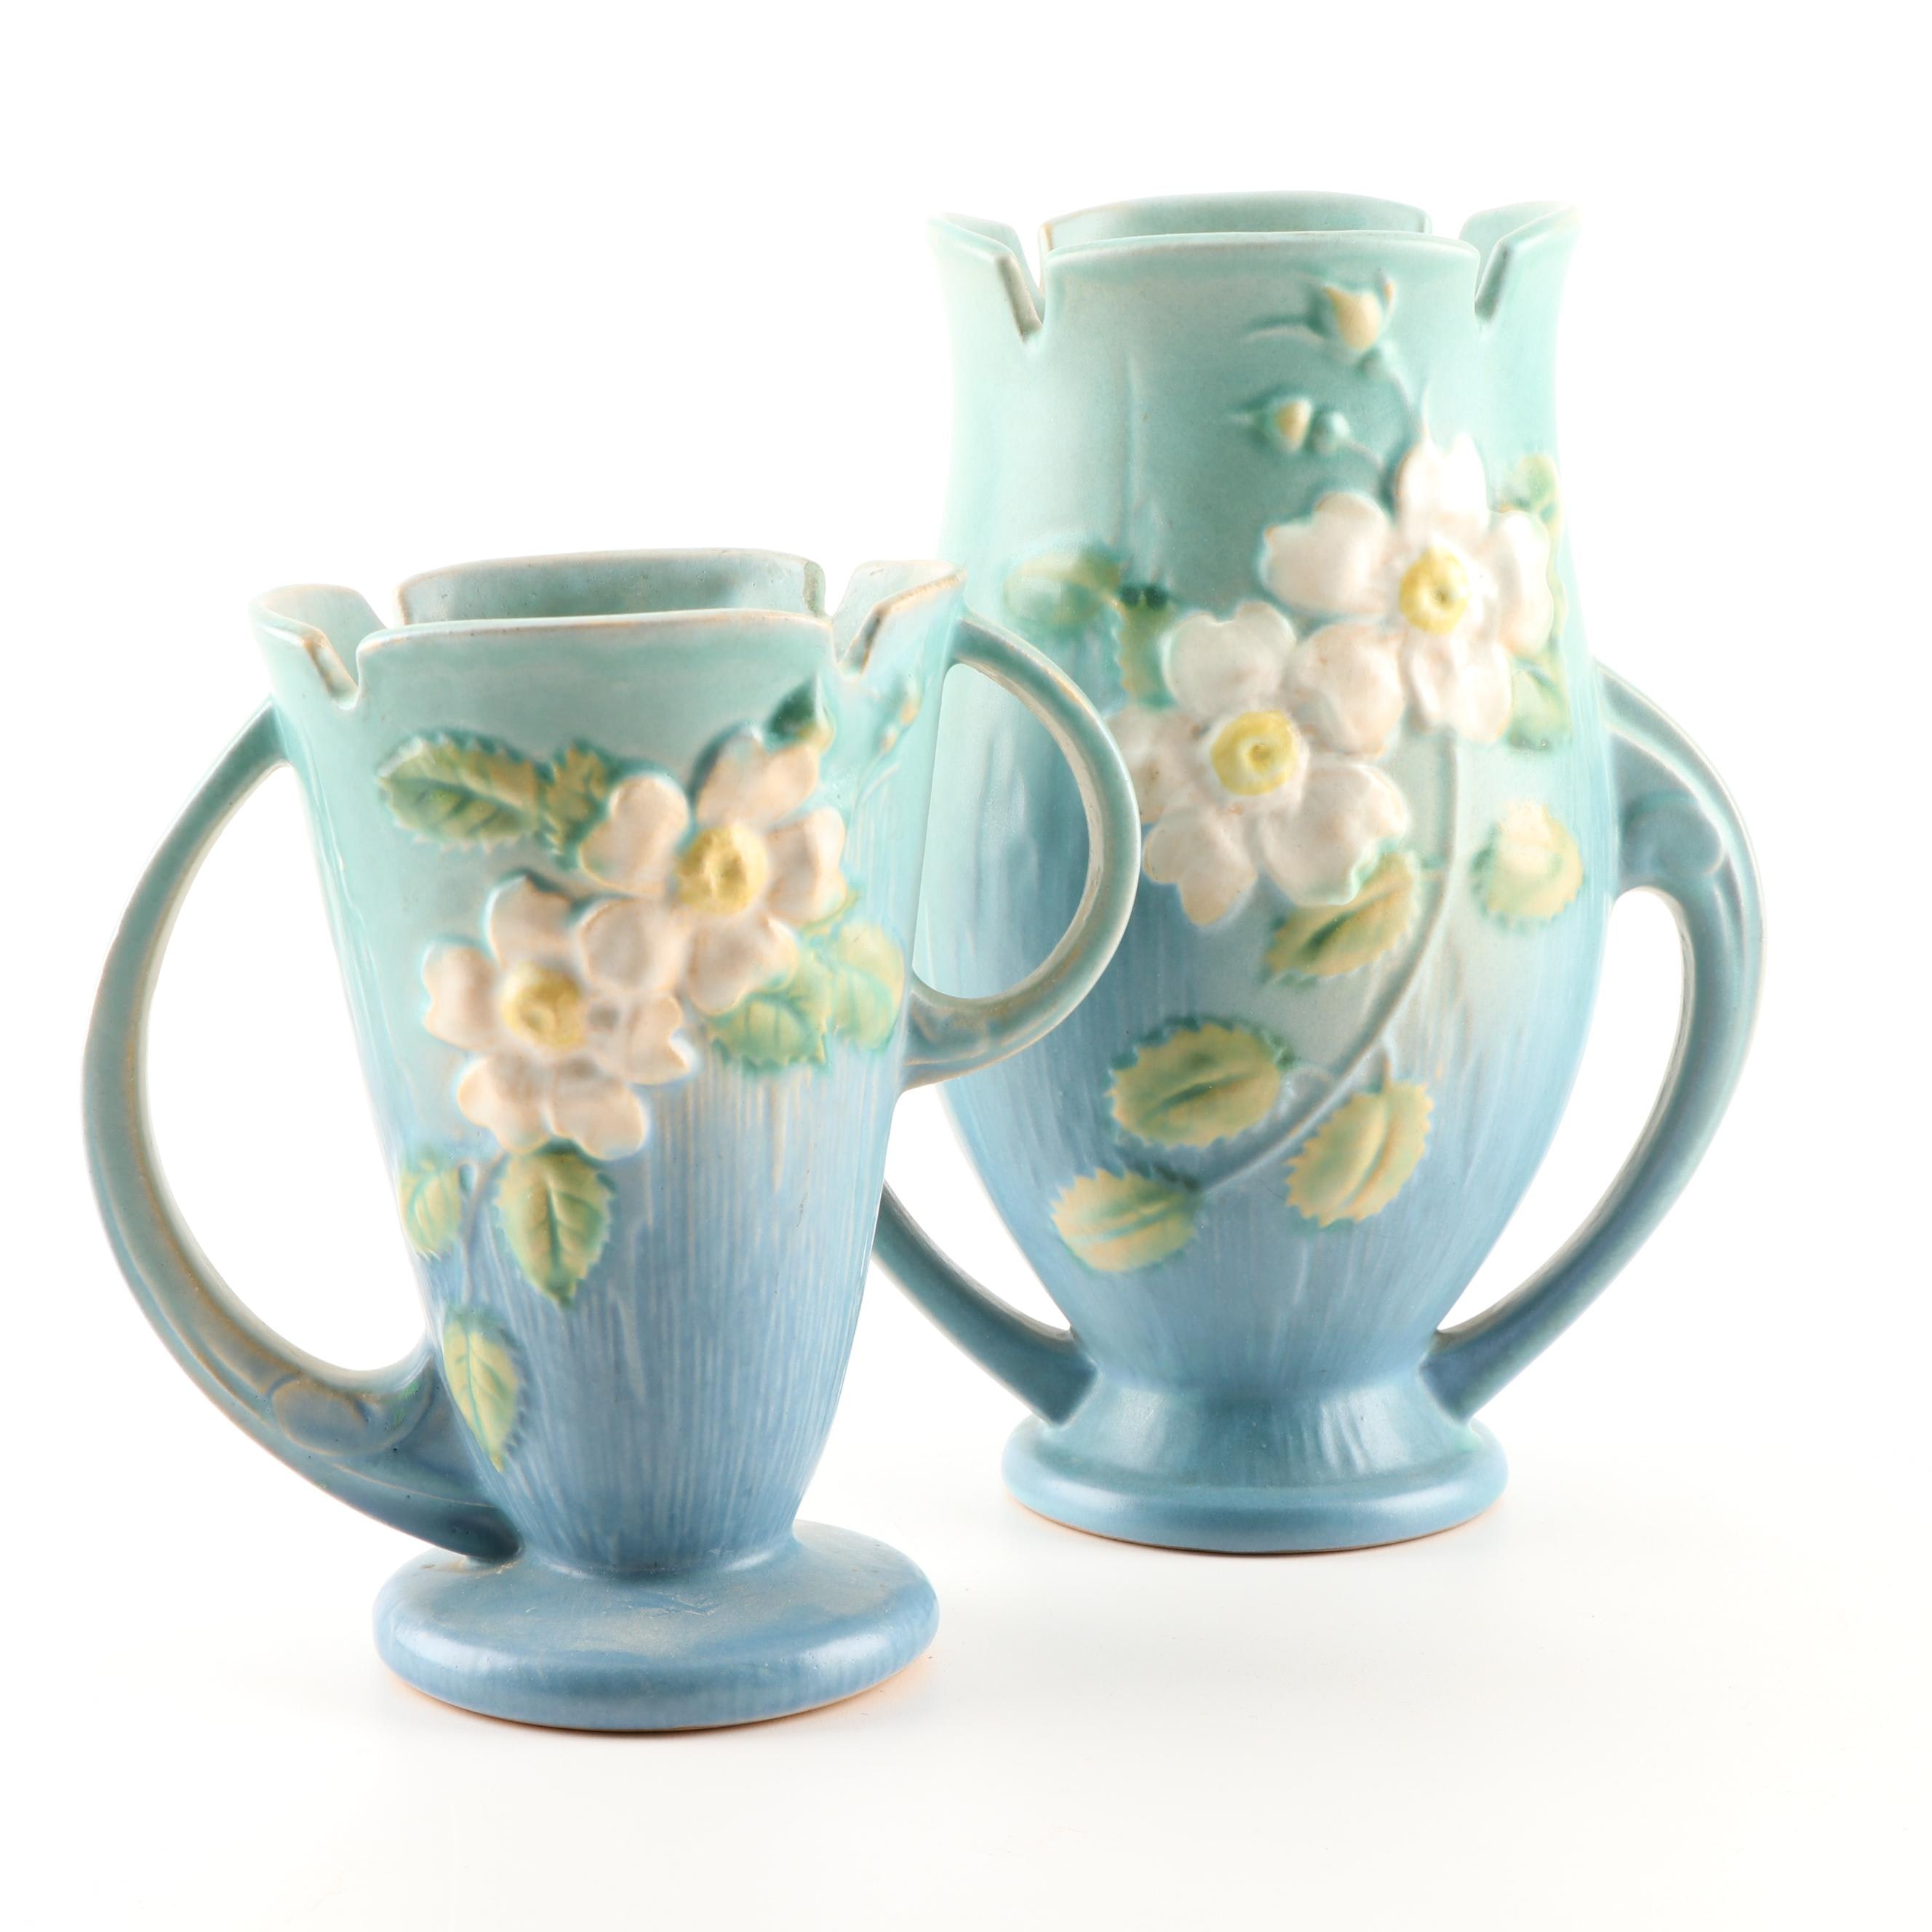 "Roseville Pottery ""White Rose"" Handled Vases, 1940s"